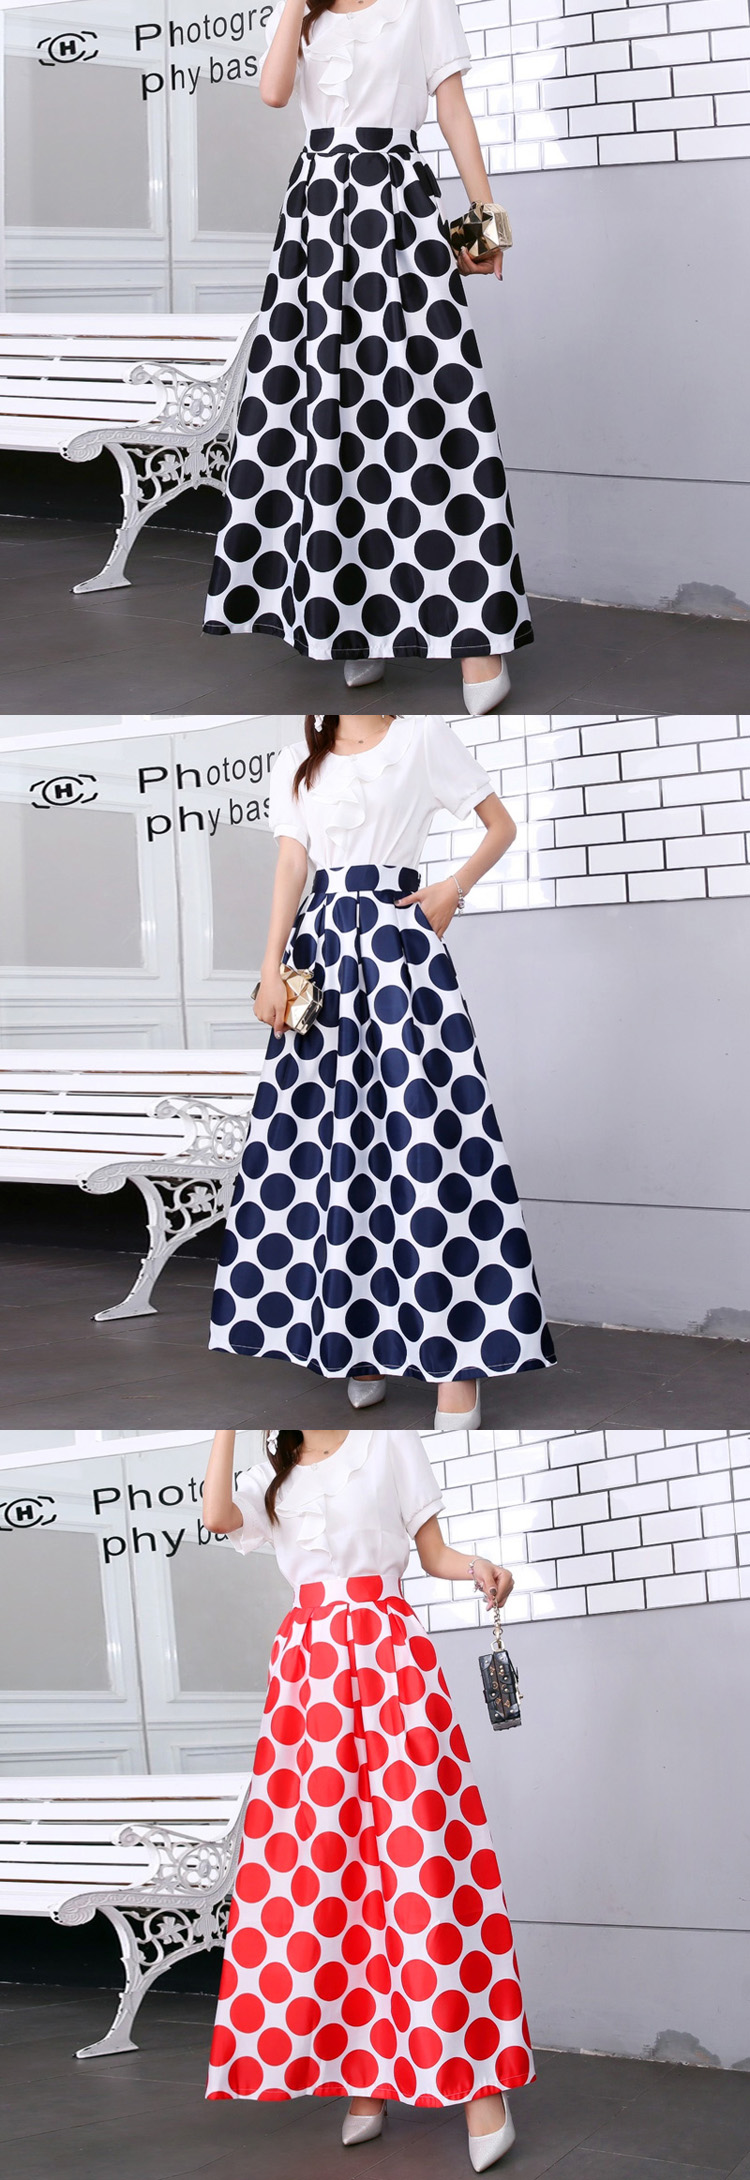 HTB16QqfUxnaK1RjSZFtq6zC2VXaI - Plus size Maxi Skirt Summer Fashion Vintage High Street A-line High Waist Floral Polka Dot Long Skirts for Women Jupe Longa